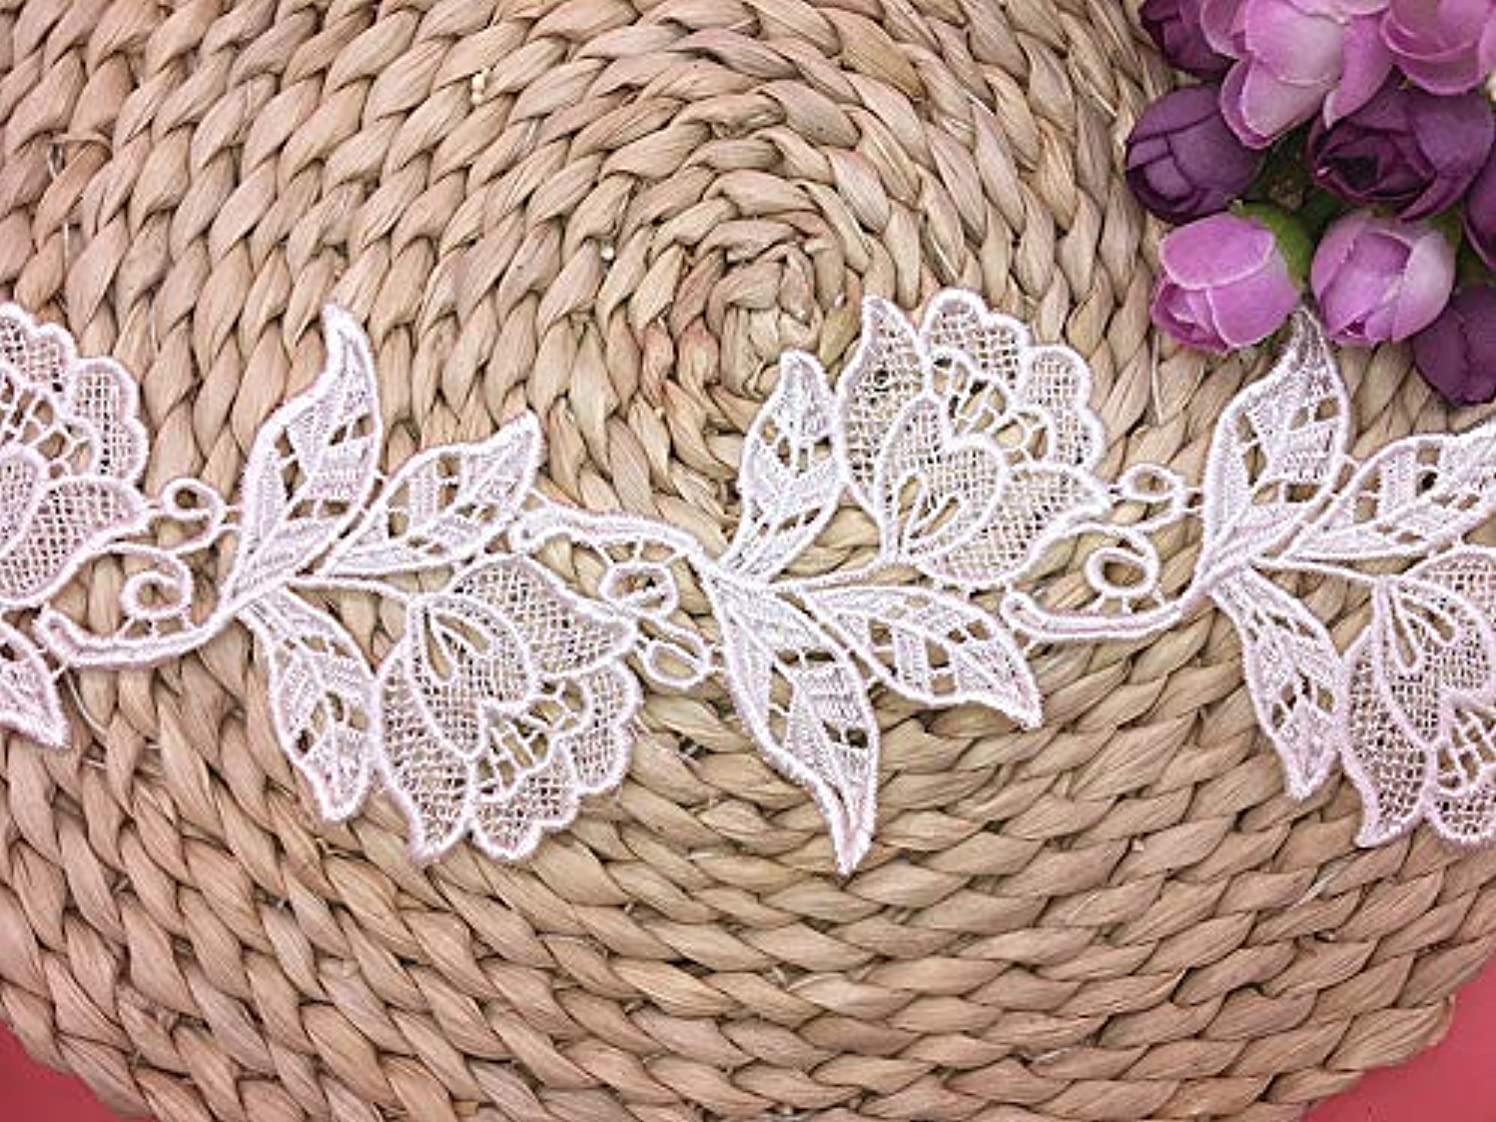 8.5CM Width Europe Floral Motifs Boho Pattern Inelastic Embroidery Lace Trim,Curtain Tablecloth Slipcover Bridal DIY Clothing/Accessories.(2 Yards in one Package) (White)